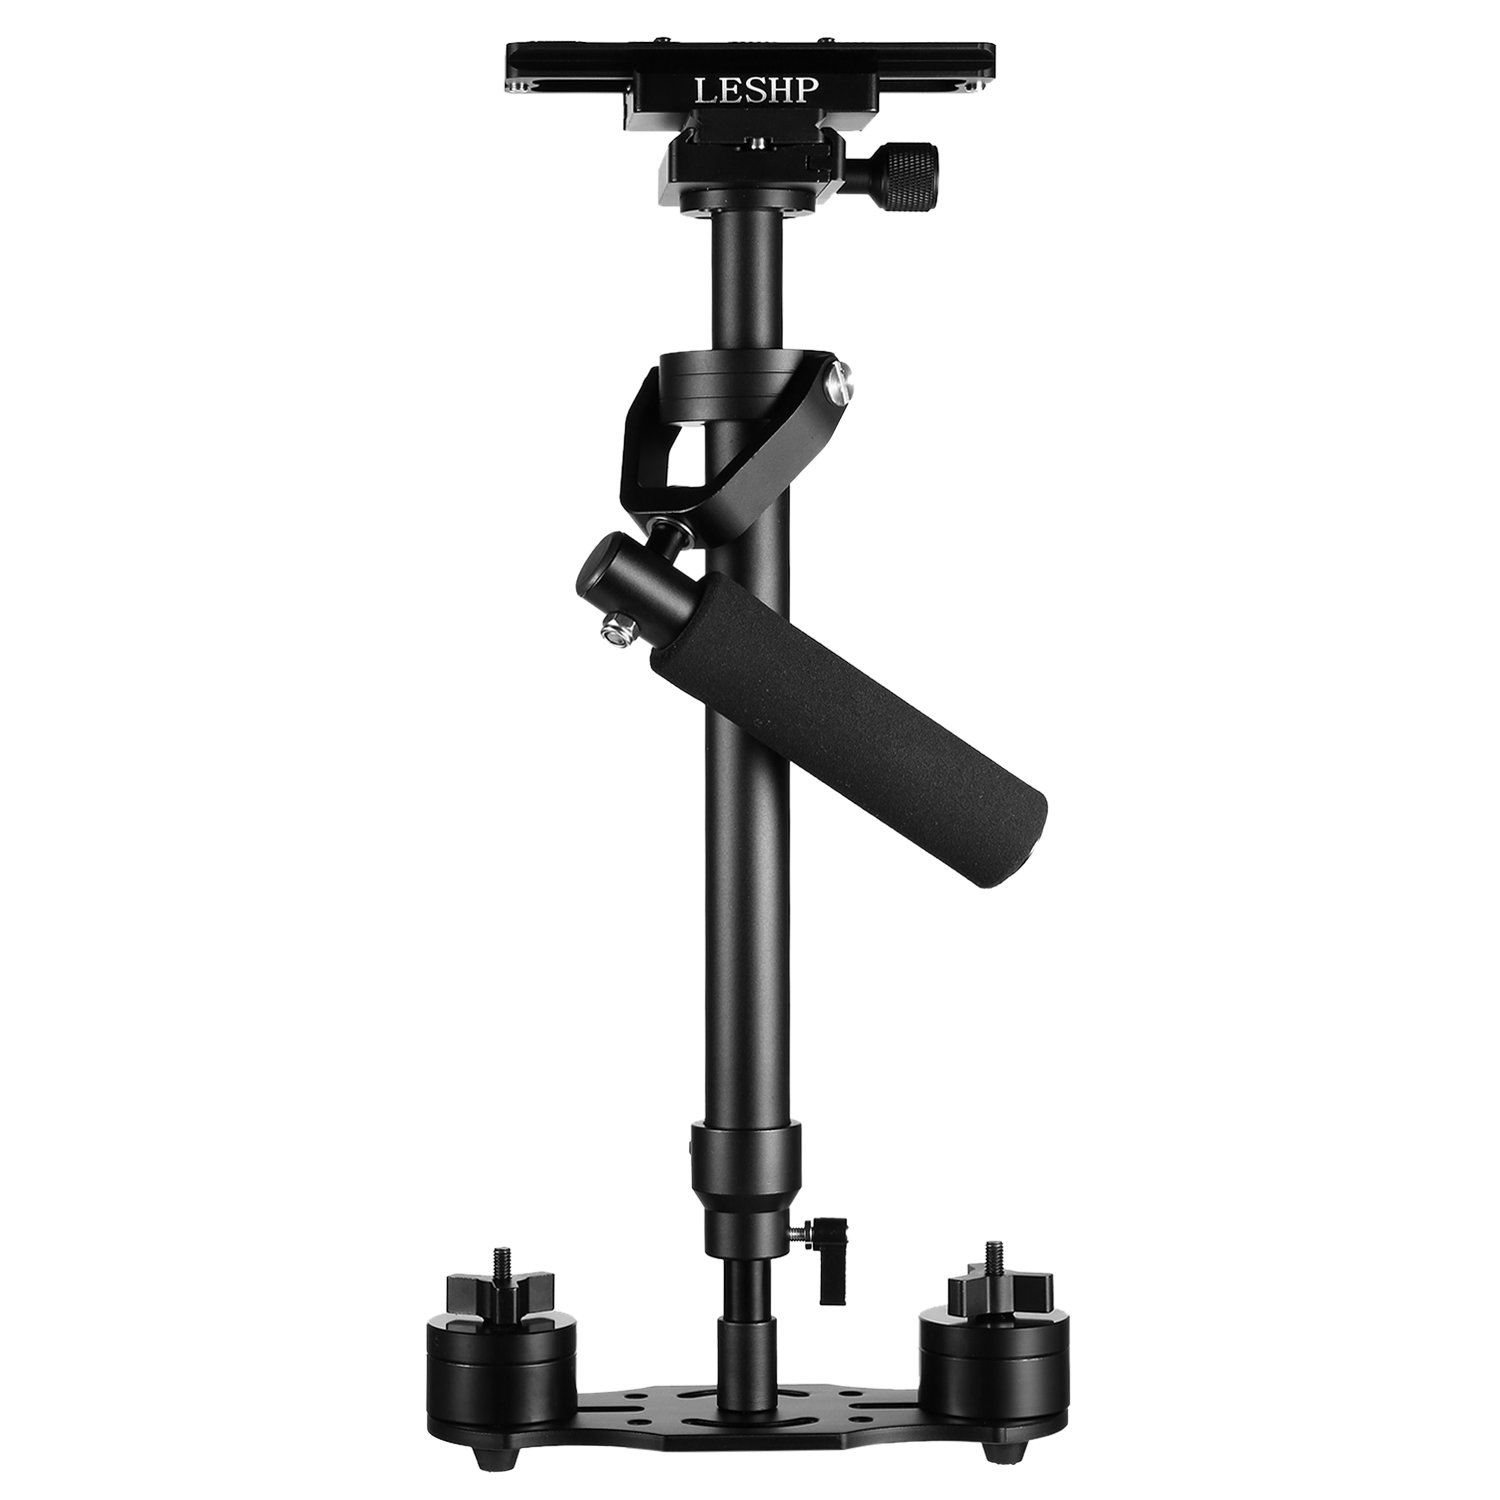 Handheld Camera Stabilizer Portable S 60 Max Hight 06 Amazonco Way Gradienter Switch Sensor Photo